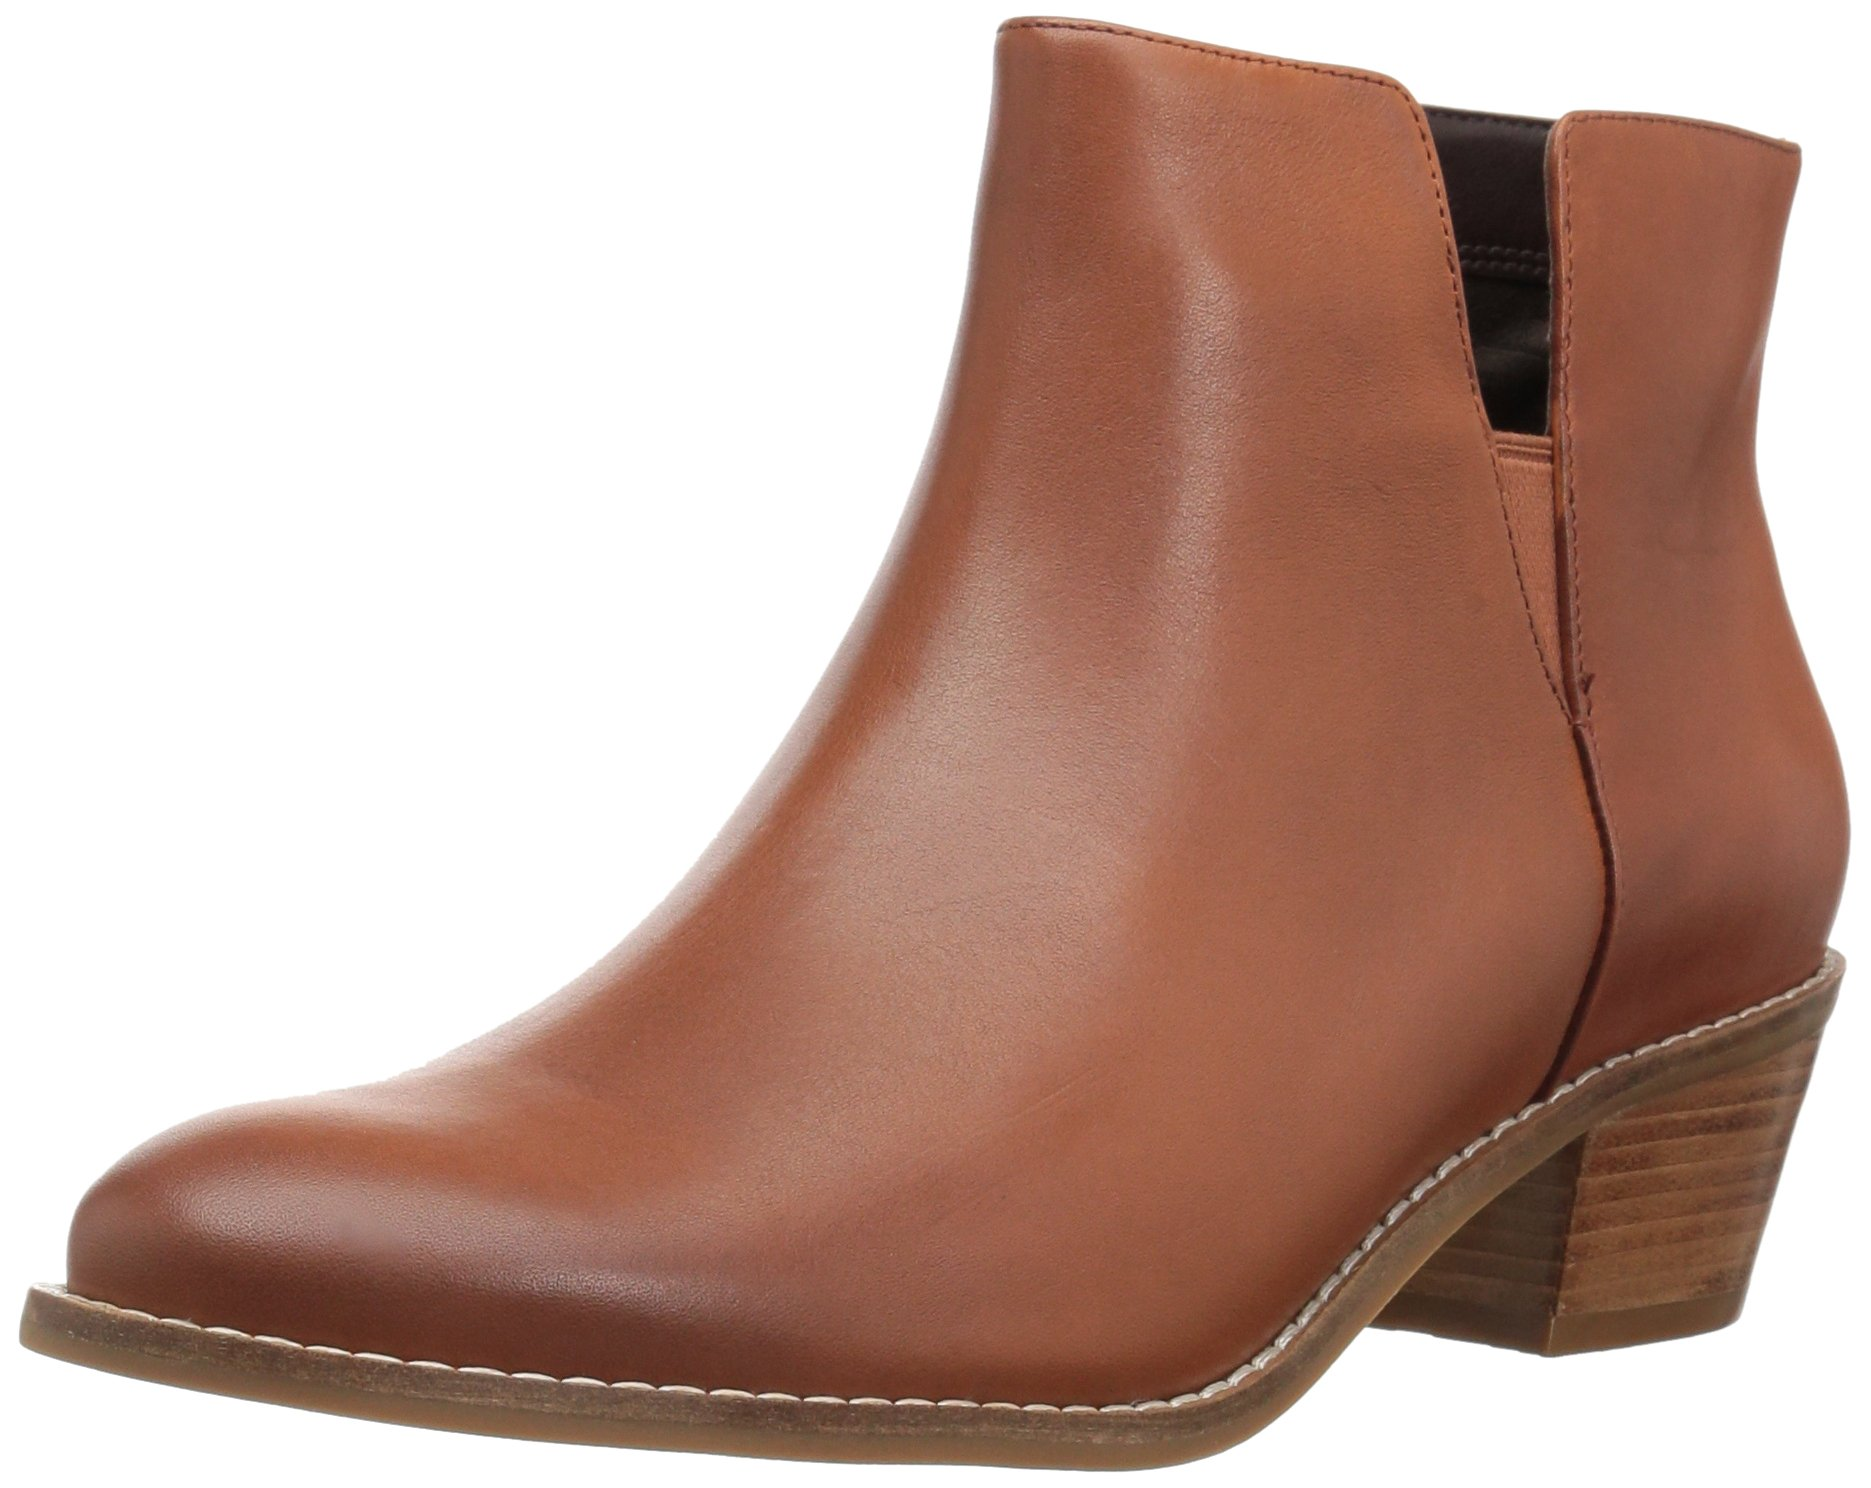 Cole Haan Women's Abbot Bootie, British Tan, 8.5 B US by Cole Haan